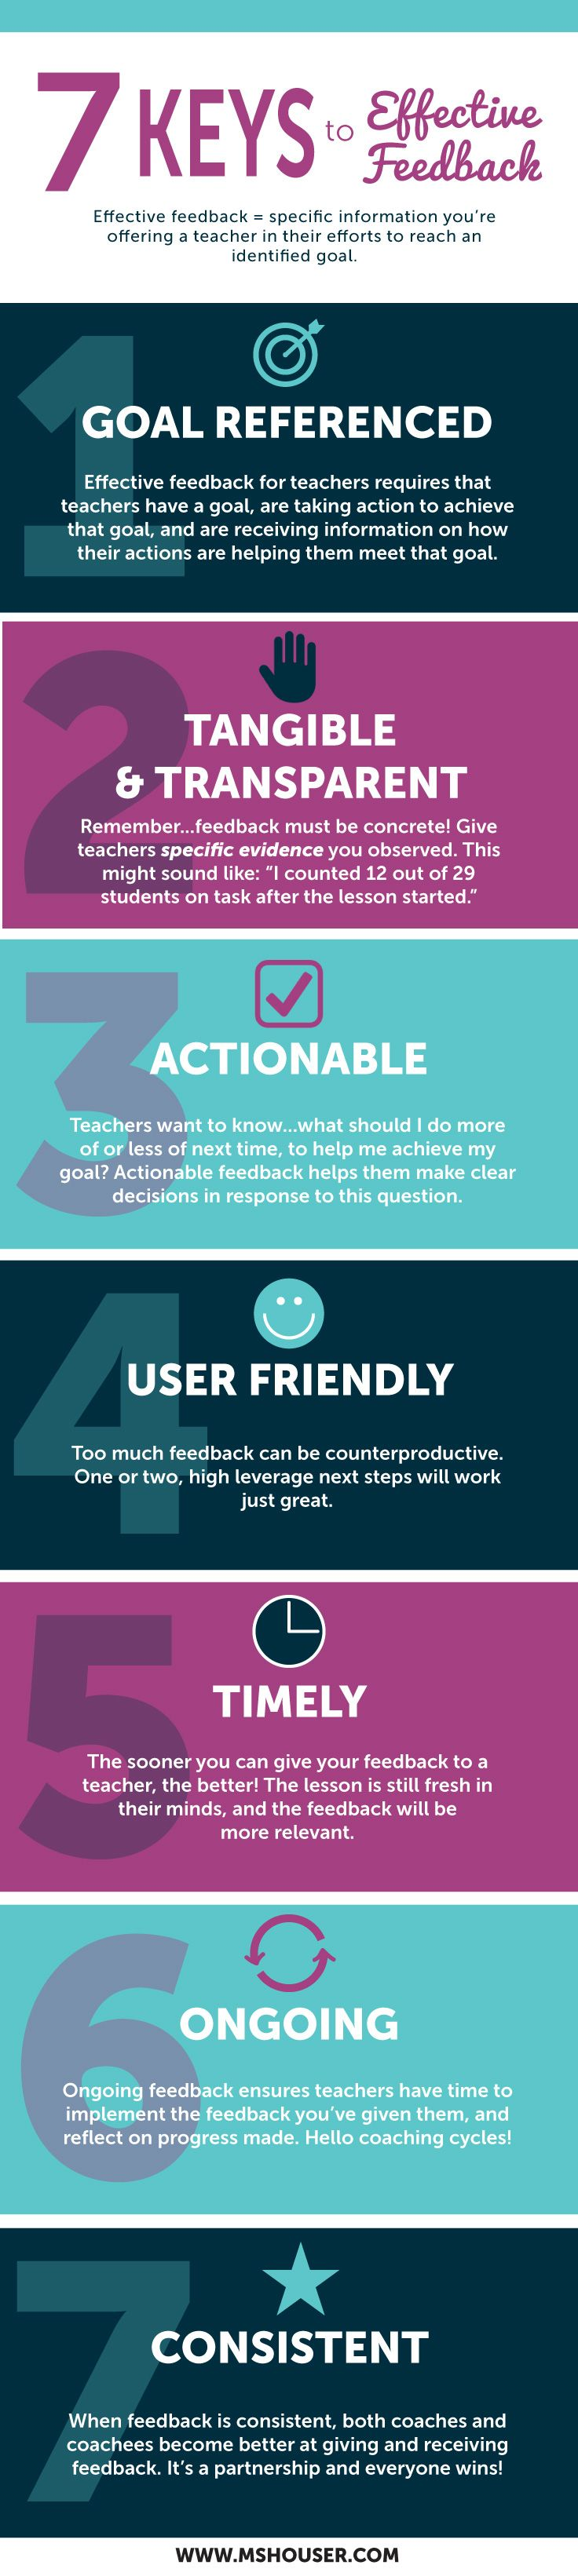 These past few weeks I've been working on a homework assignment. As part of my district role as a coach/mentor, I was asked to assess the effectiveness of my feedback. No prob! I thought. I'm totally